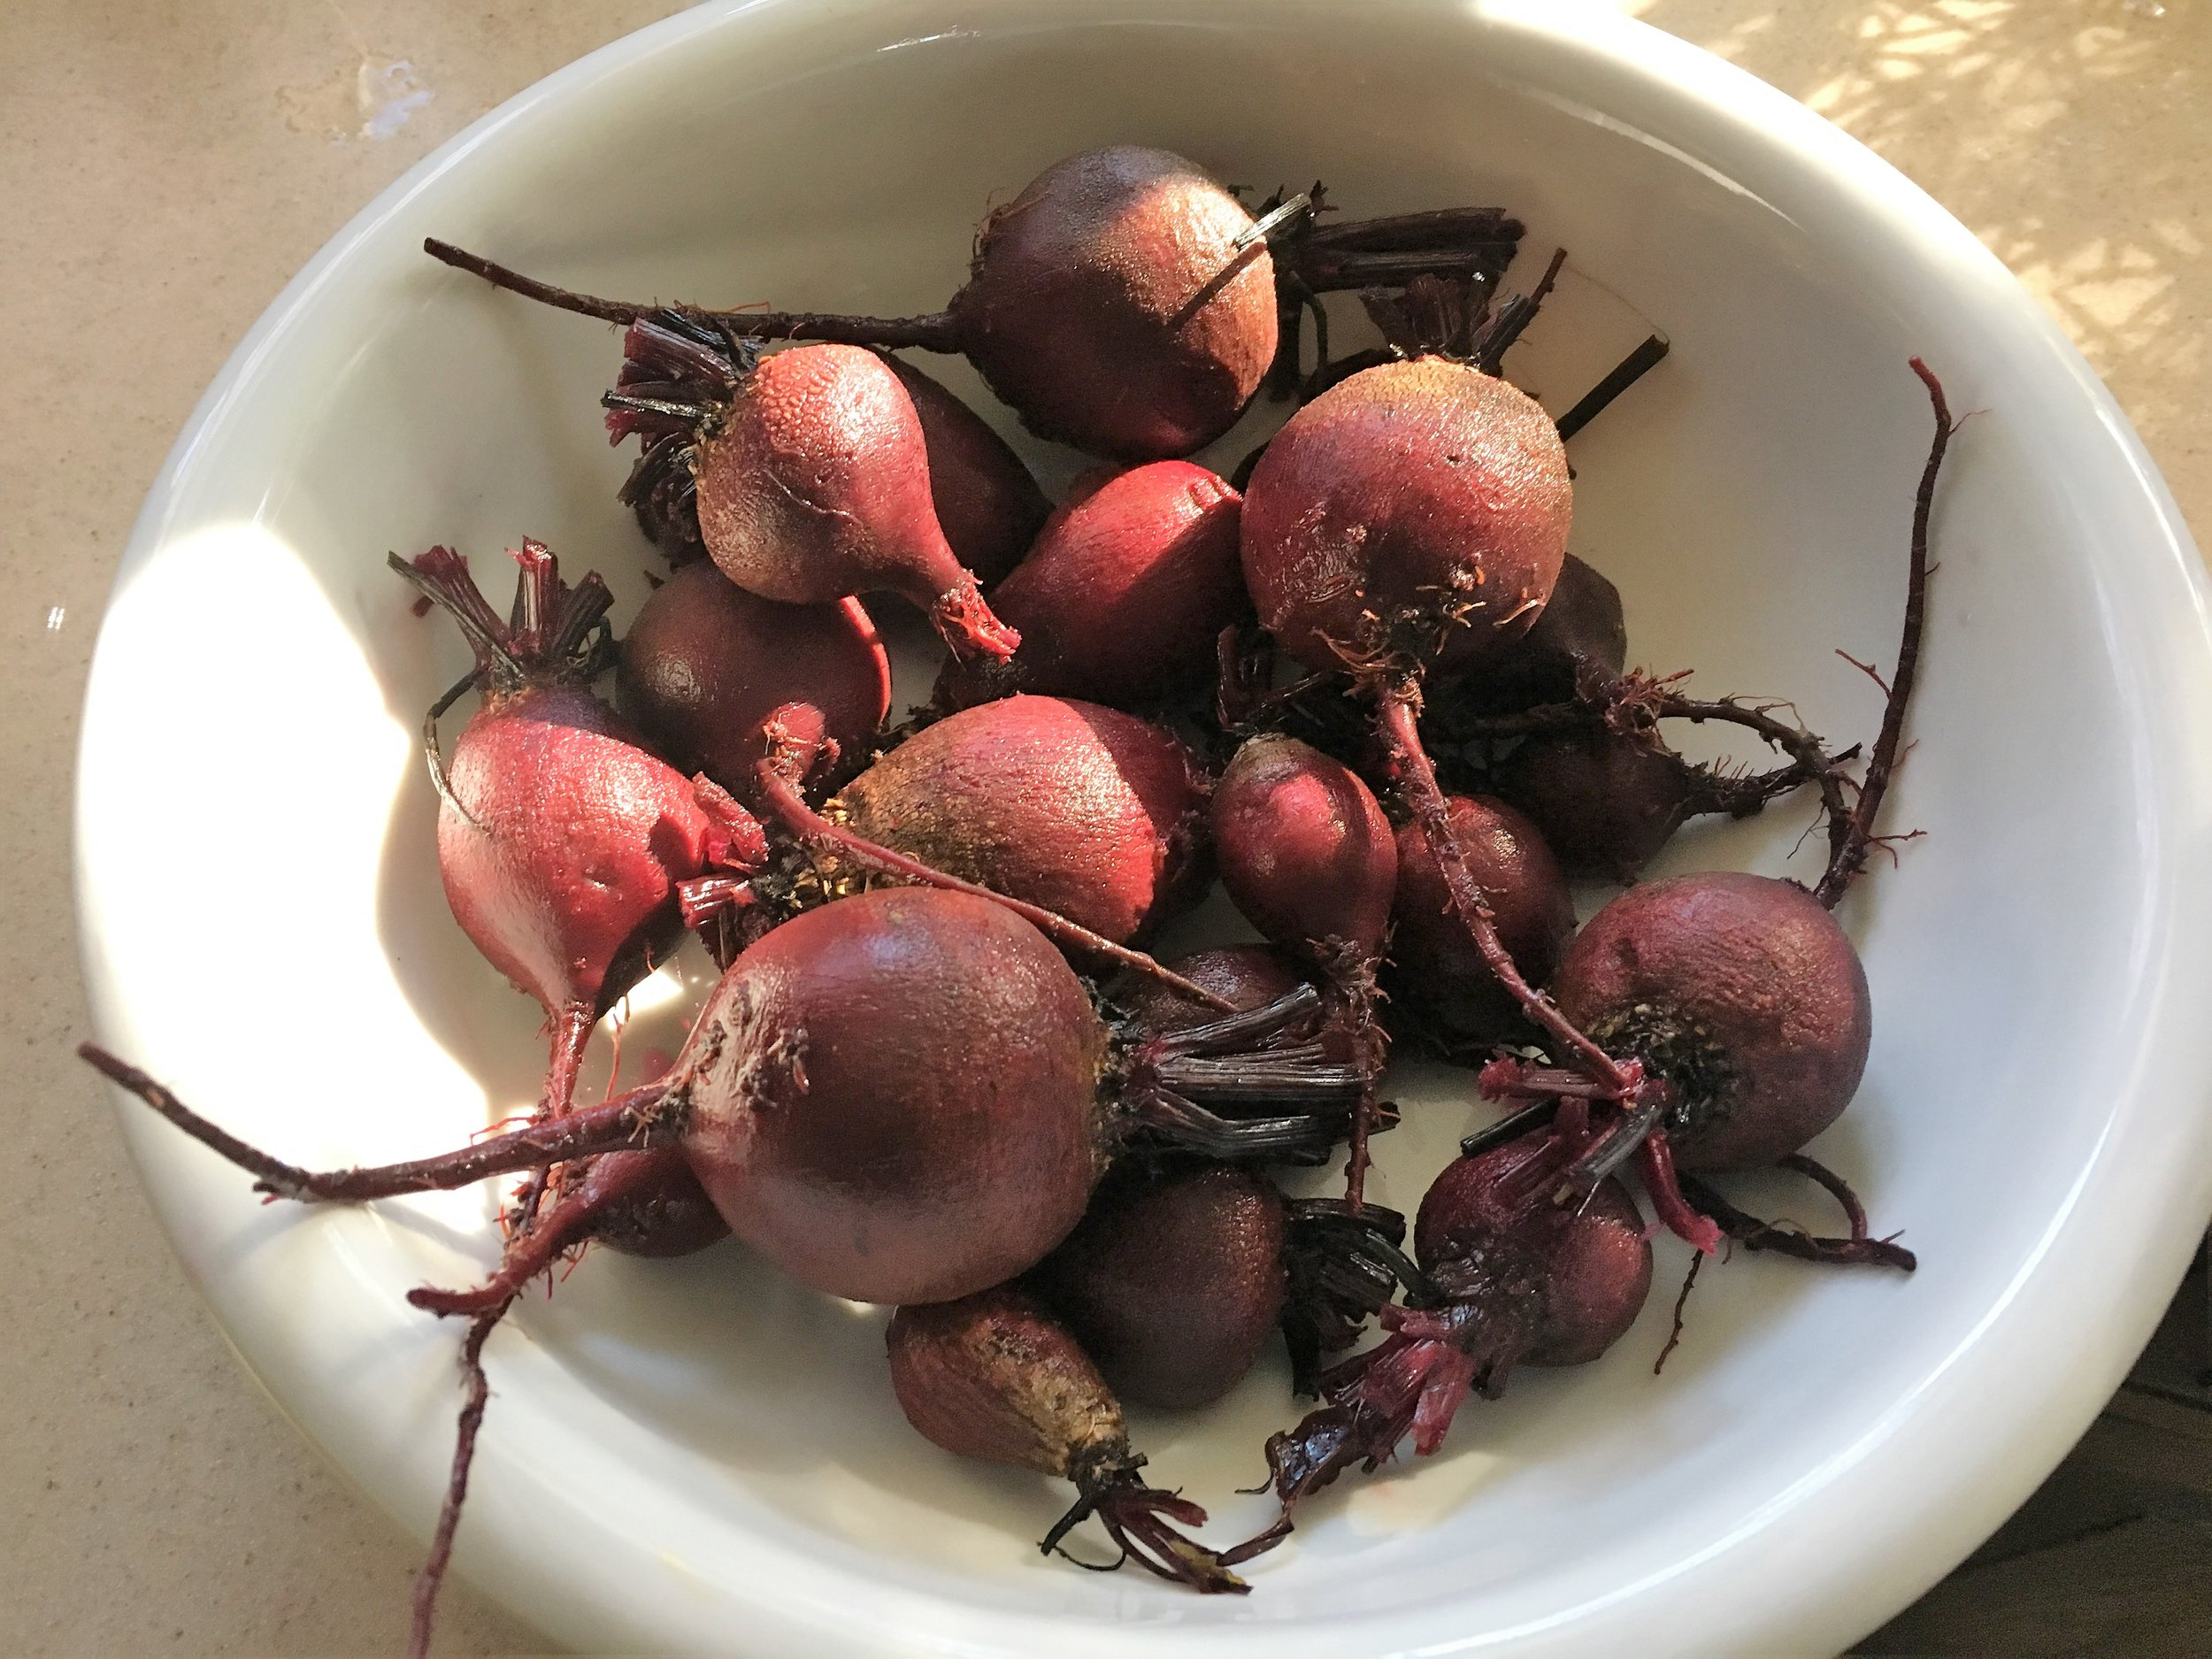 beets ready to bake.jpg